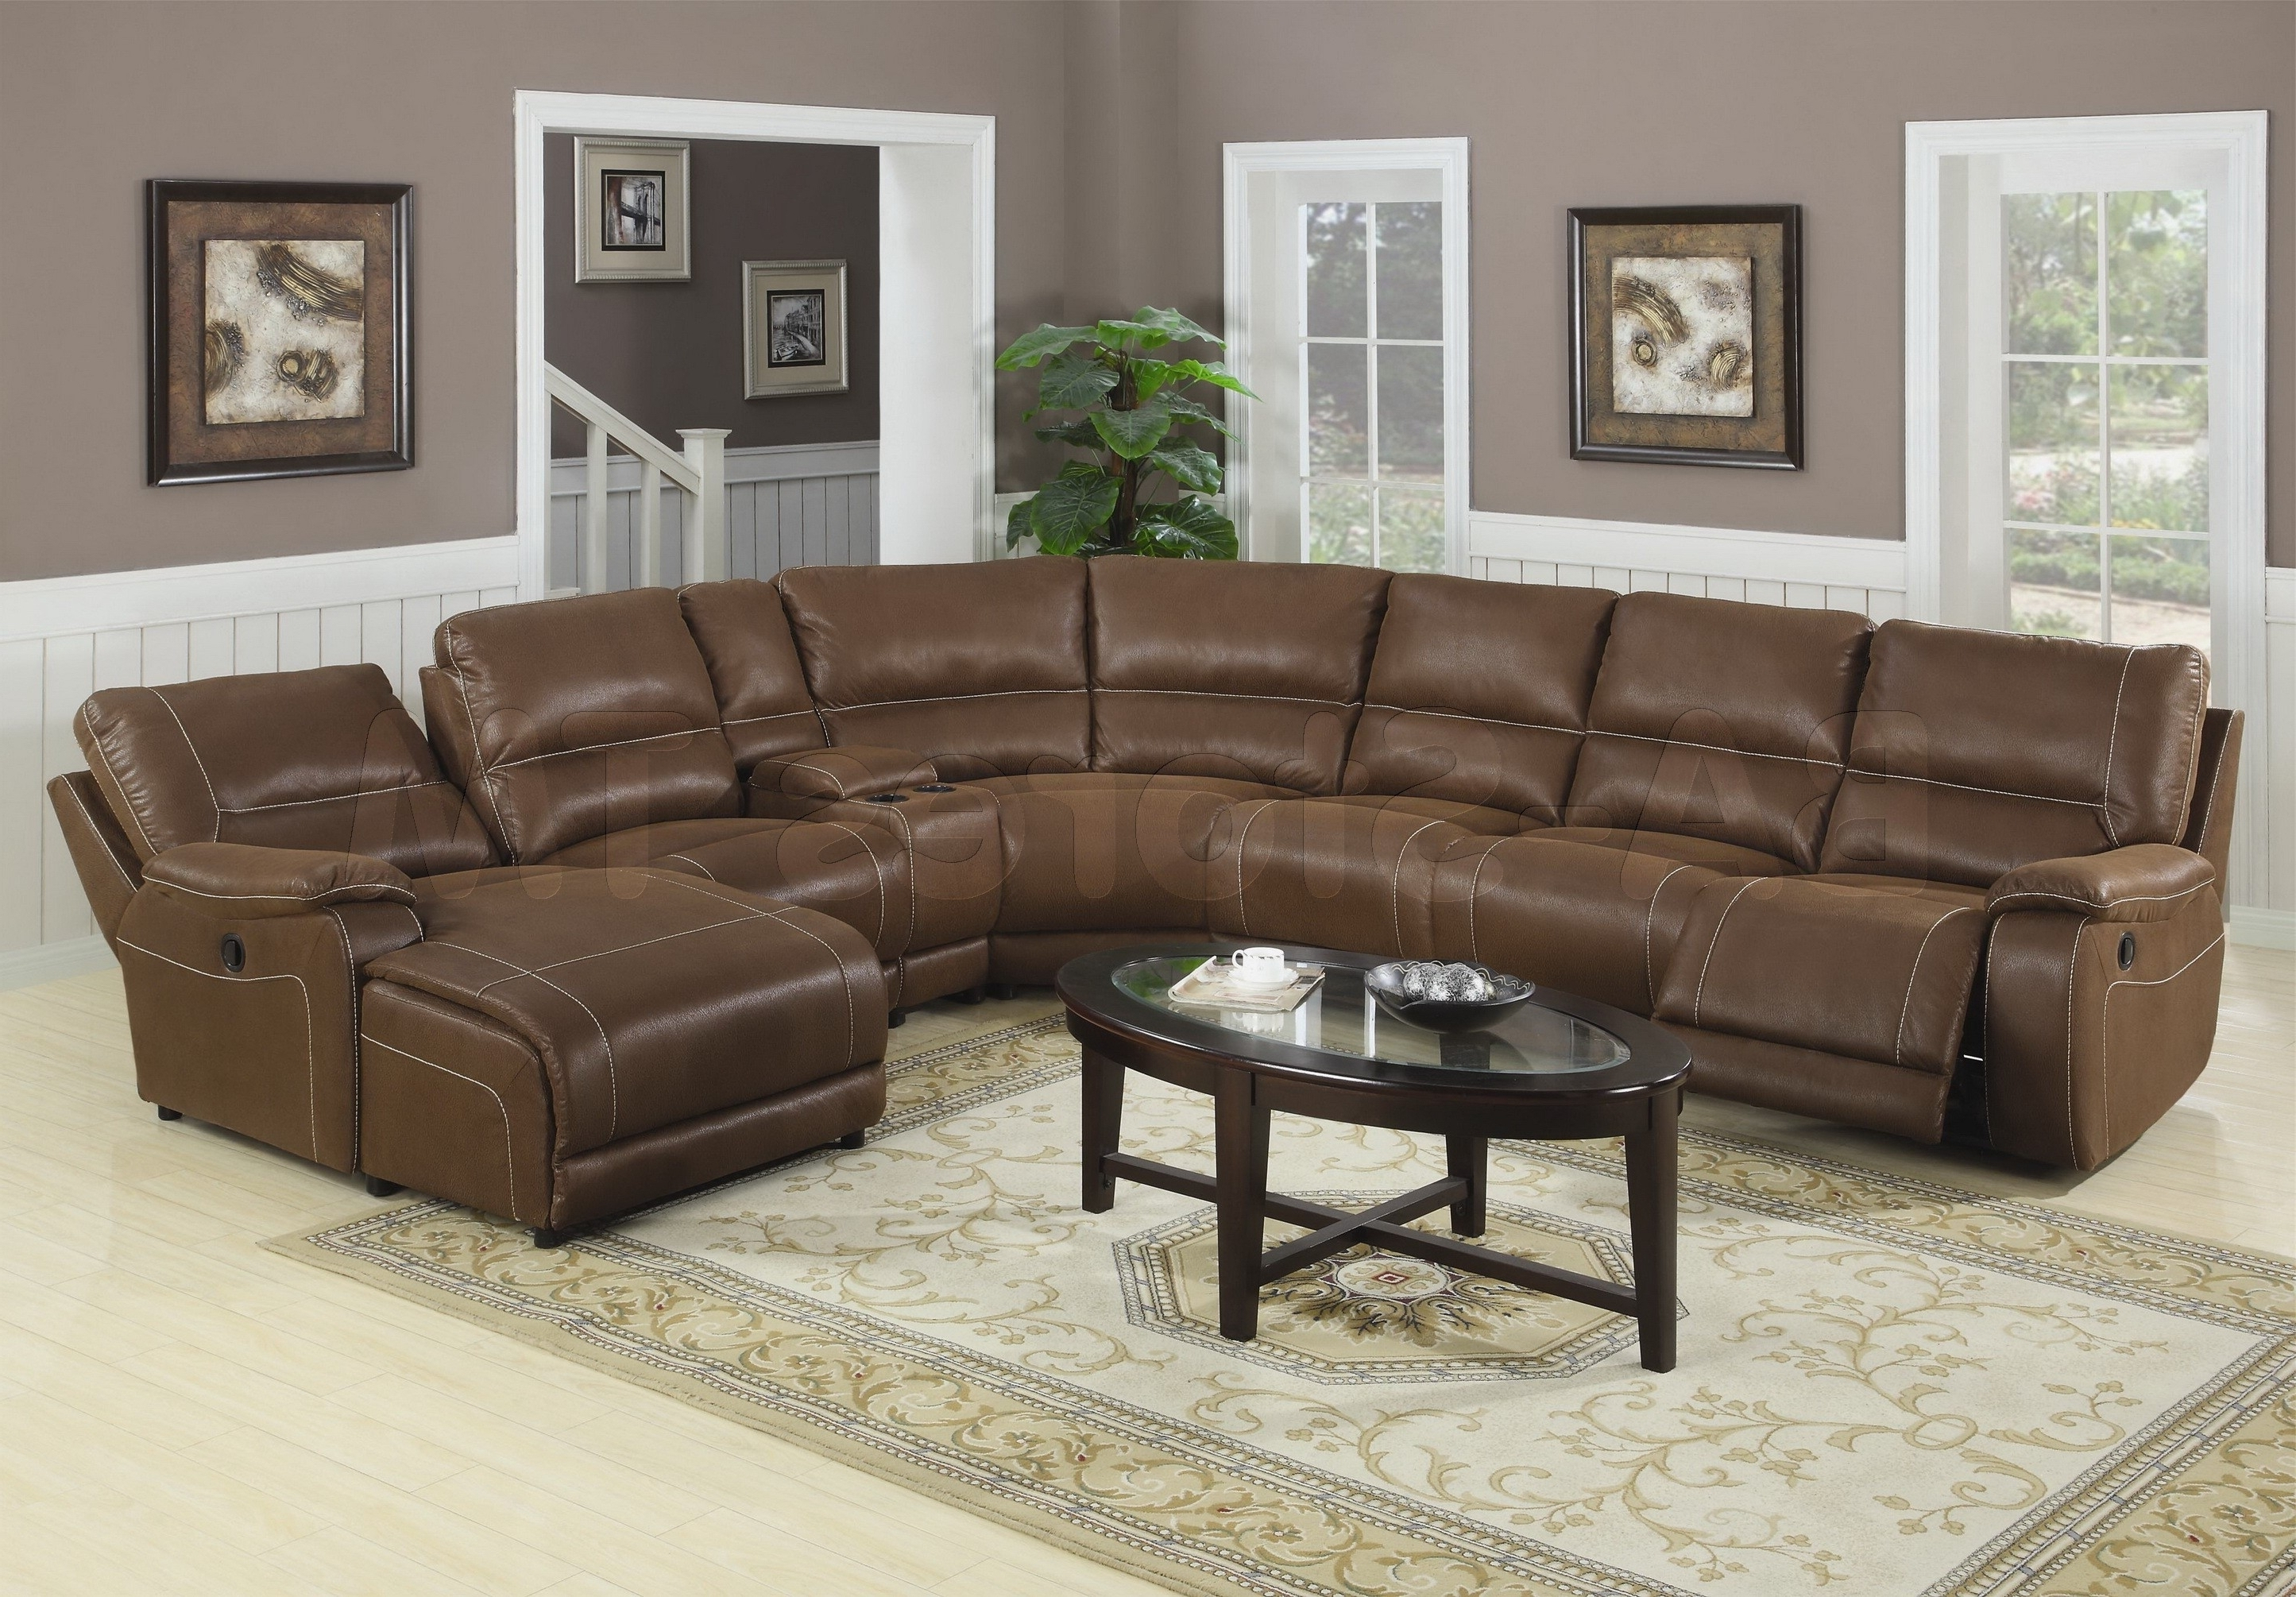 Sofa ~ Comfy Natuzzi Power Reclining Sofa Natuzzi Leather Italsofa With Regard To Preferred Reclining Sofas With Chaise (View 10 of 15)